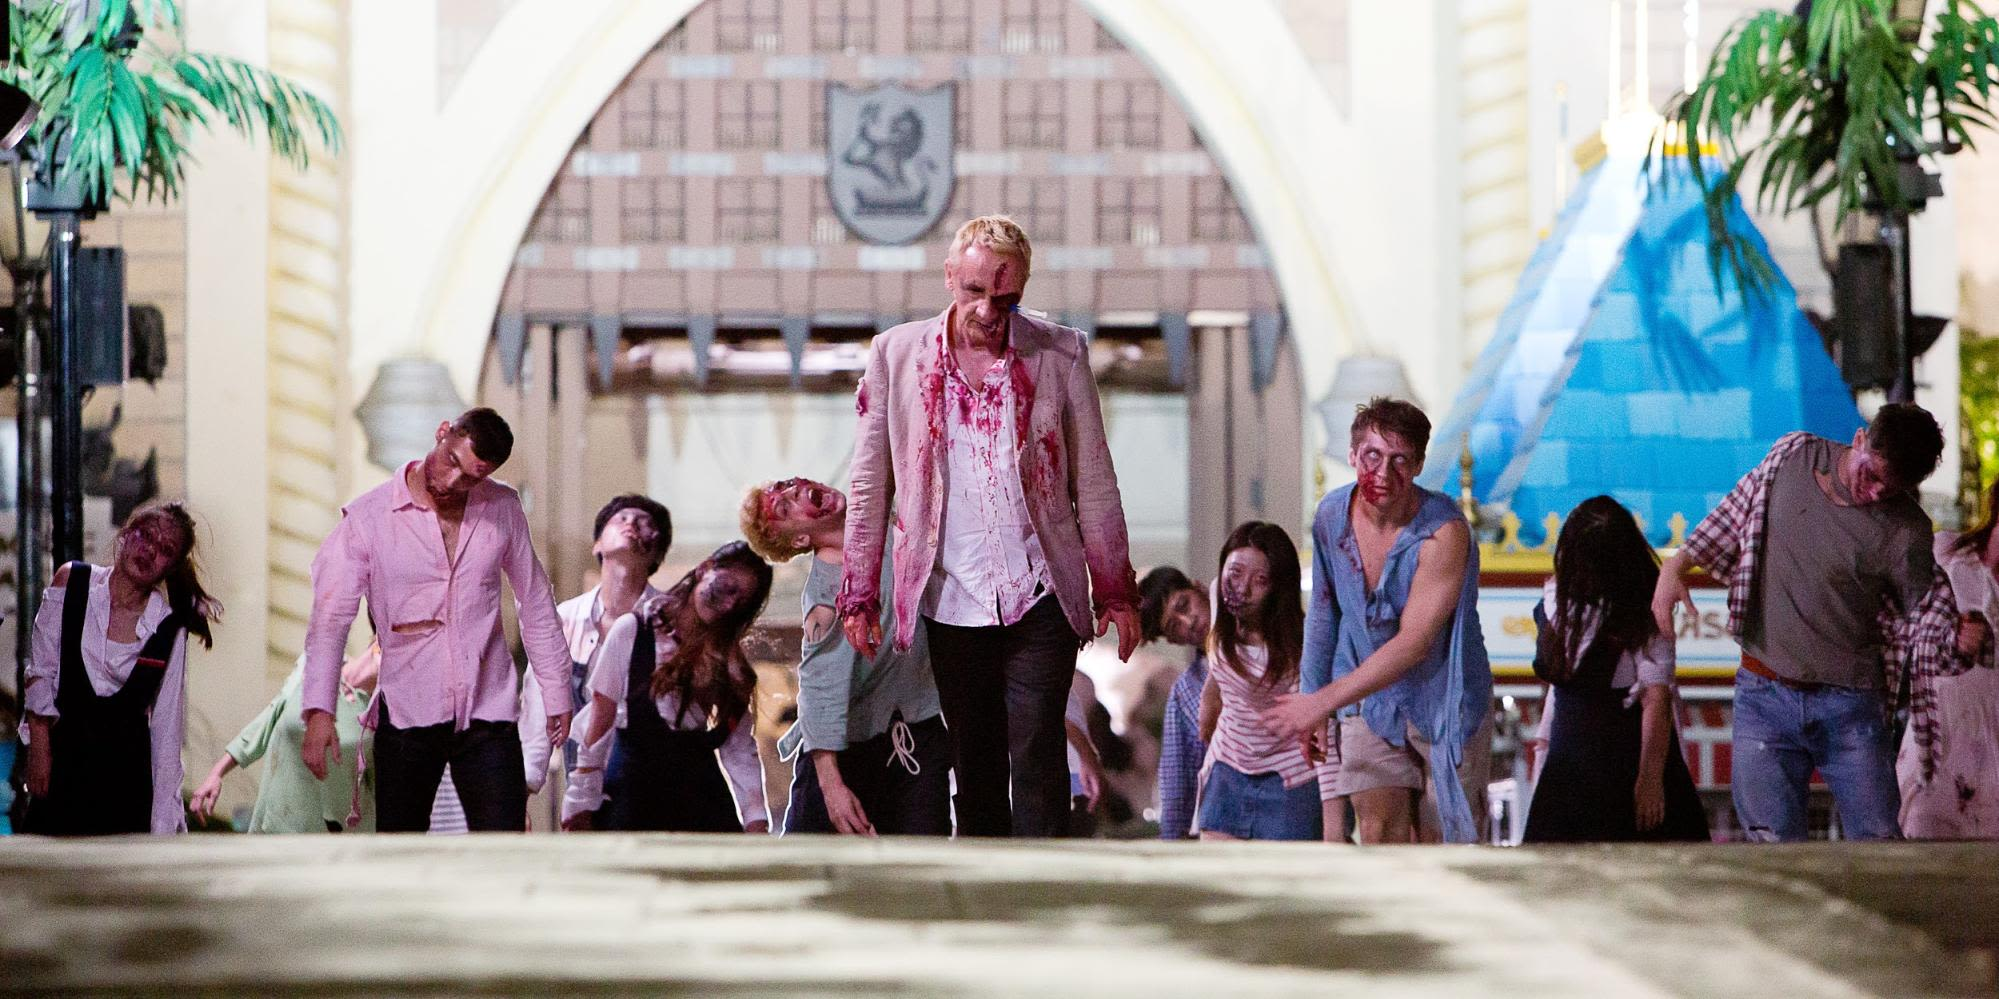 Zombies taking over Lotte World